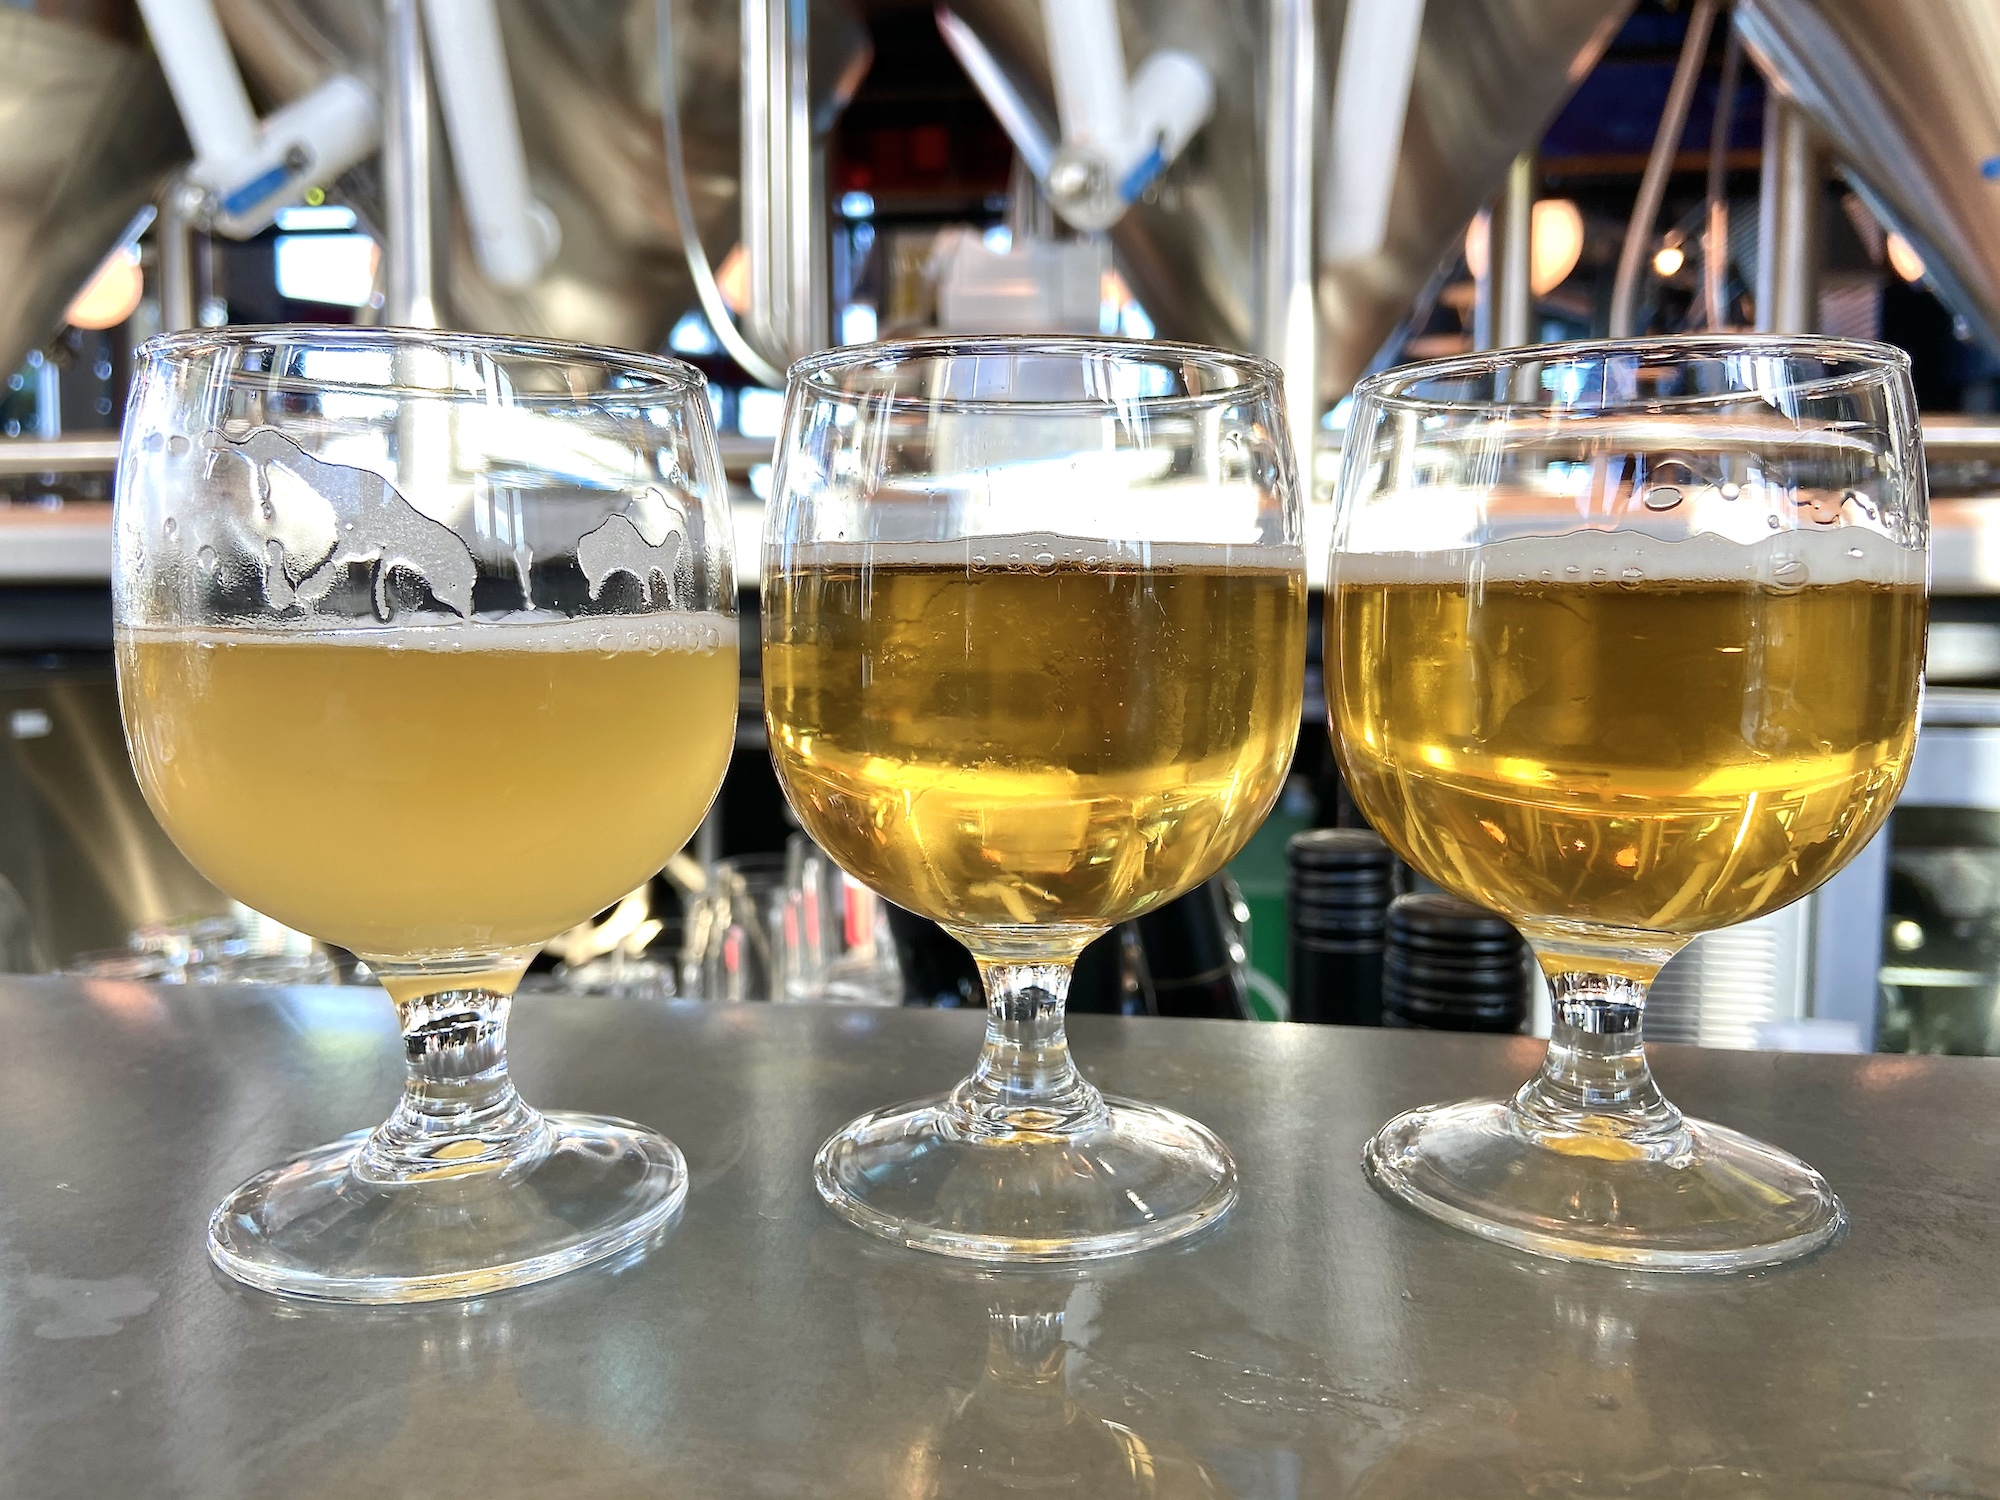 The folly and foibles of New Belgium's new Mission Bay taproom | 48 hills